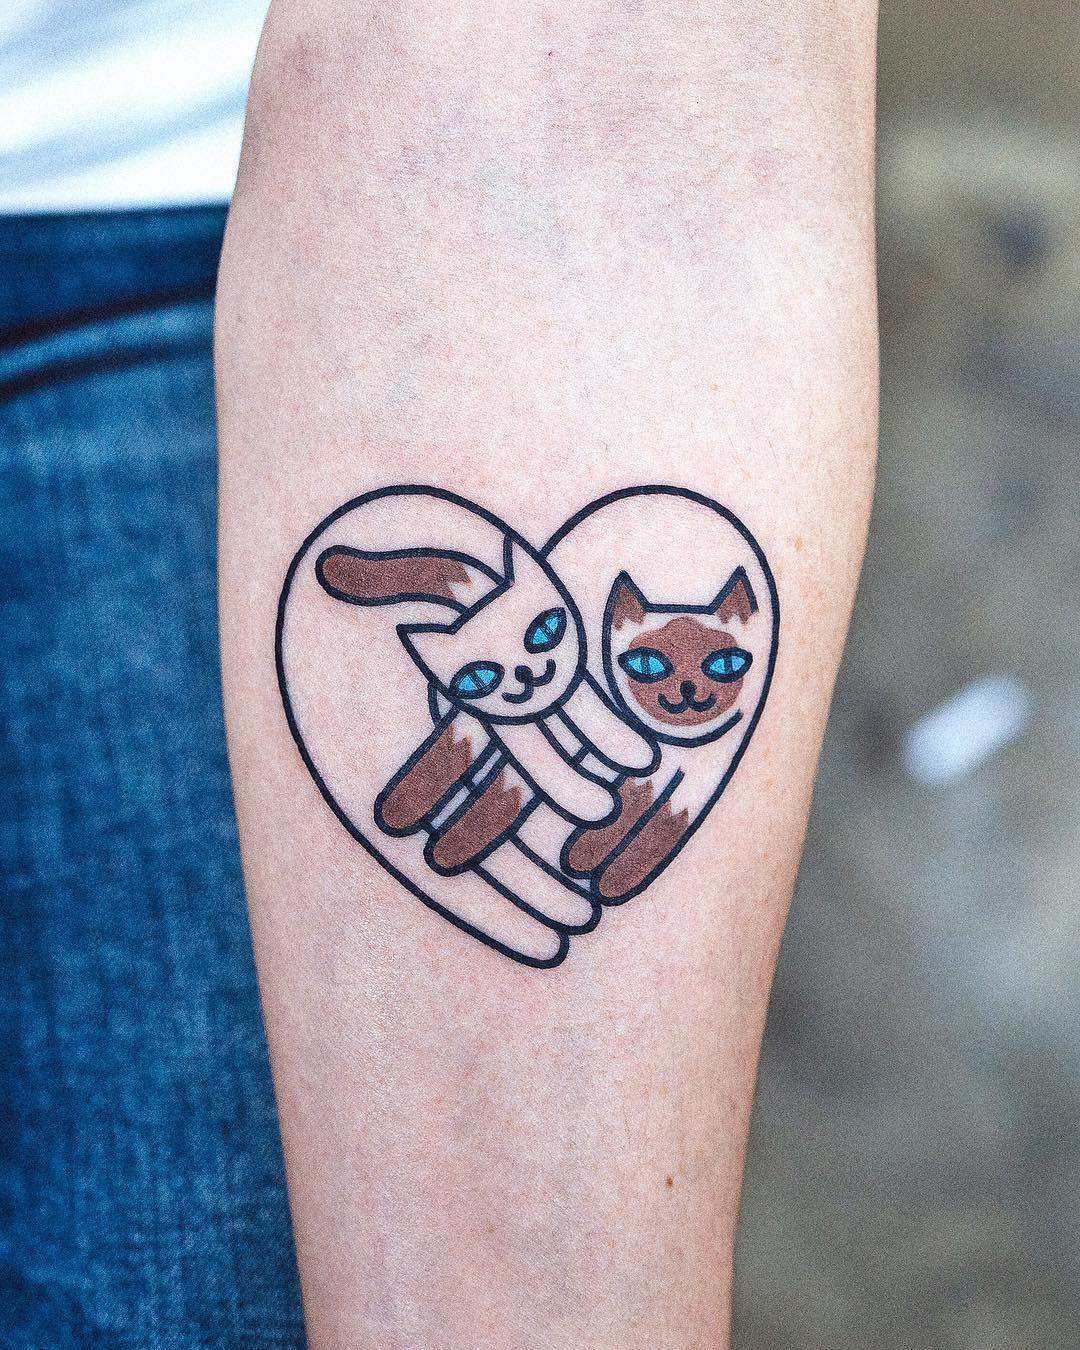 Catship by @woo_loves_you